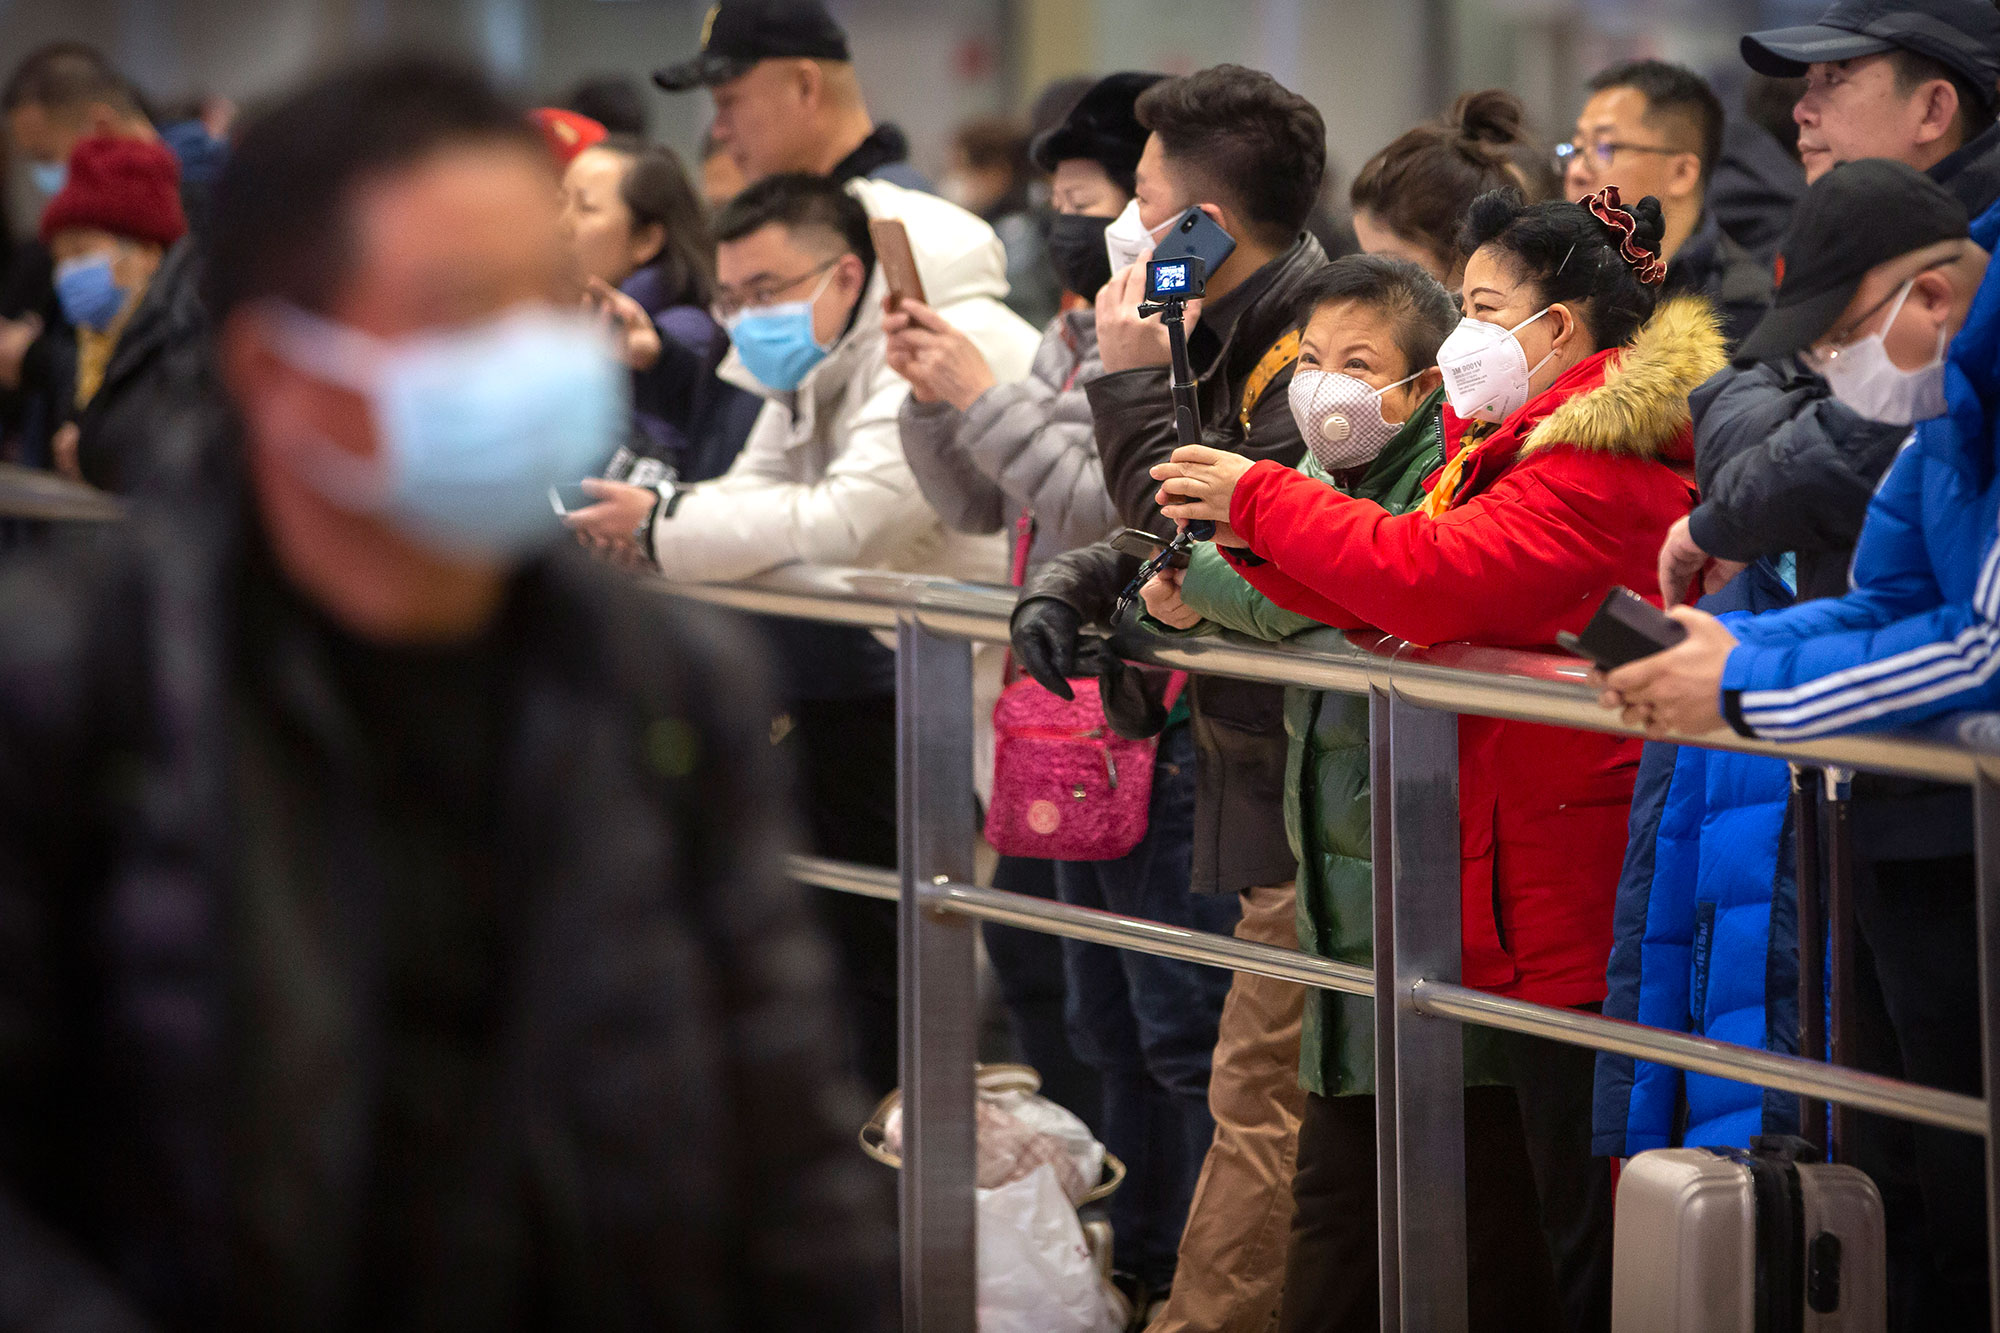 People wear face masks as they wait for arriving passengers at Beijing Capital International Airport in Beijing on January 23.